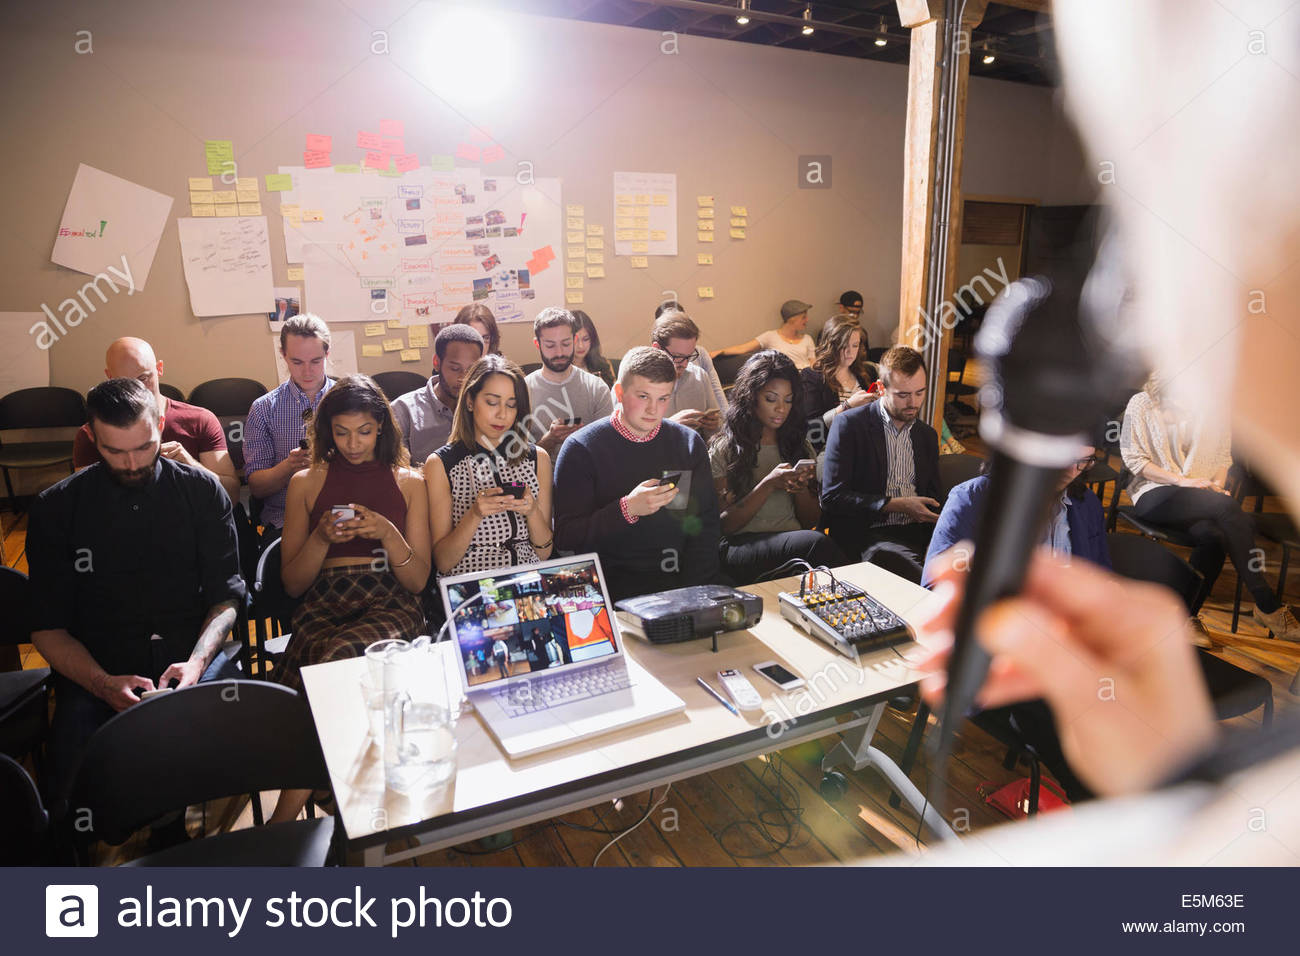 People in audience checking cell phones during presentation - Stock Image